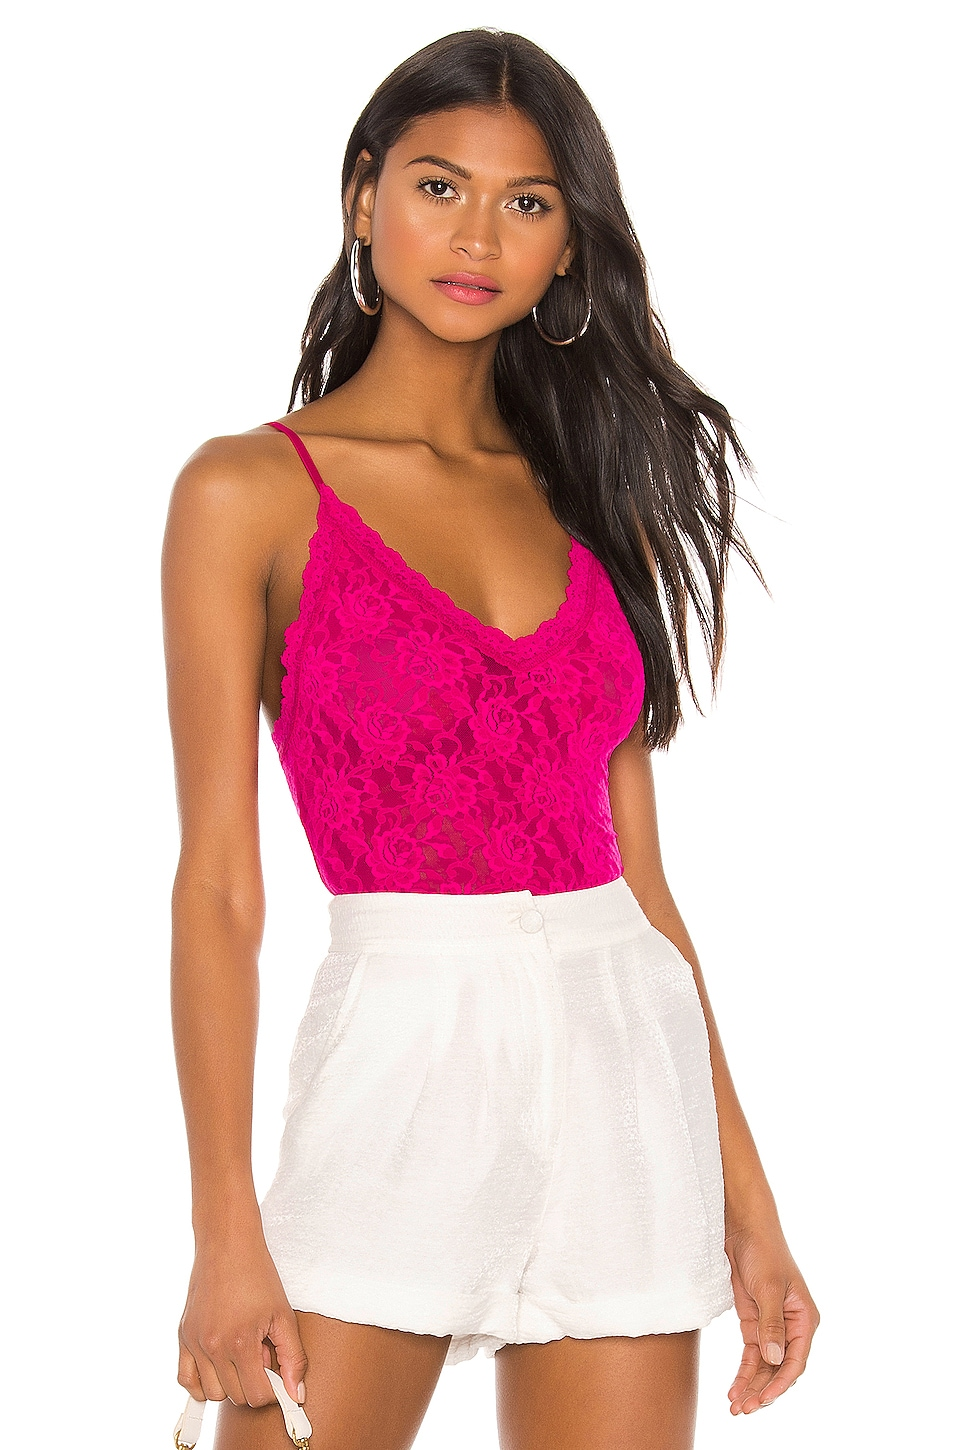 Hanky Panky Signature Lace Thong Back Bodysuit in Allure